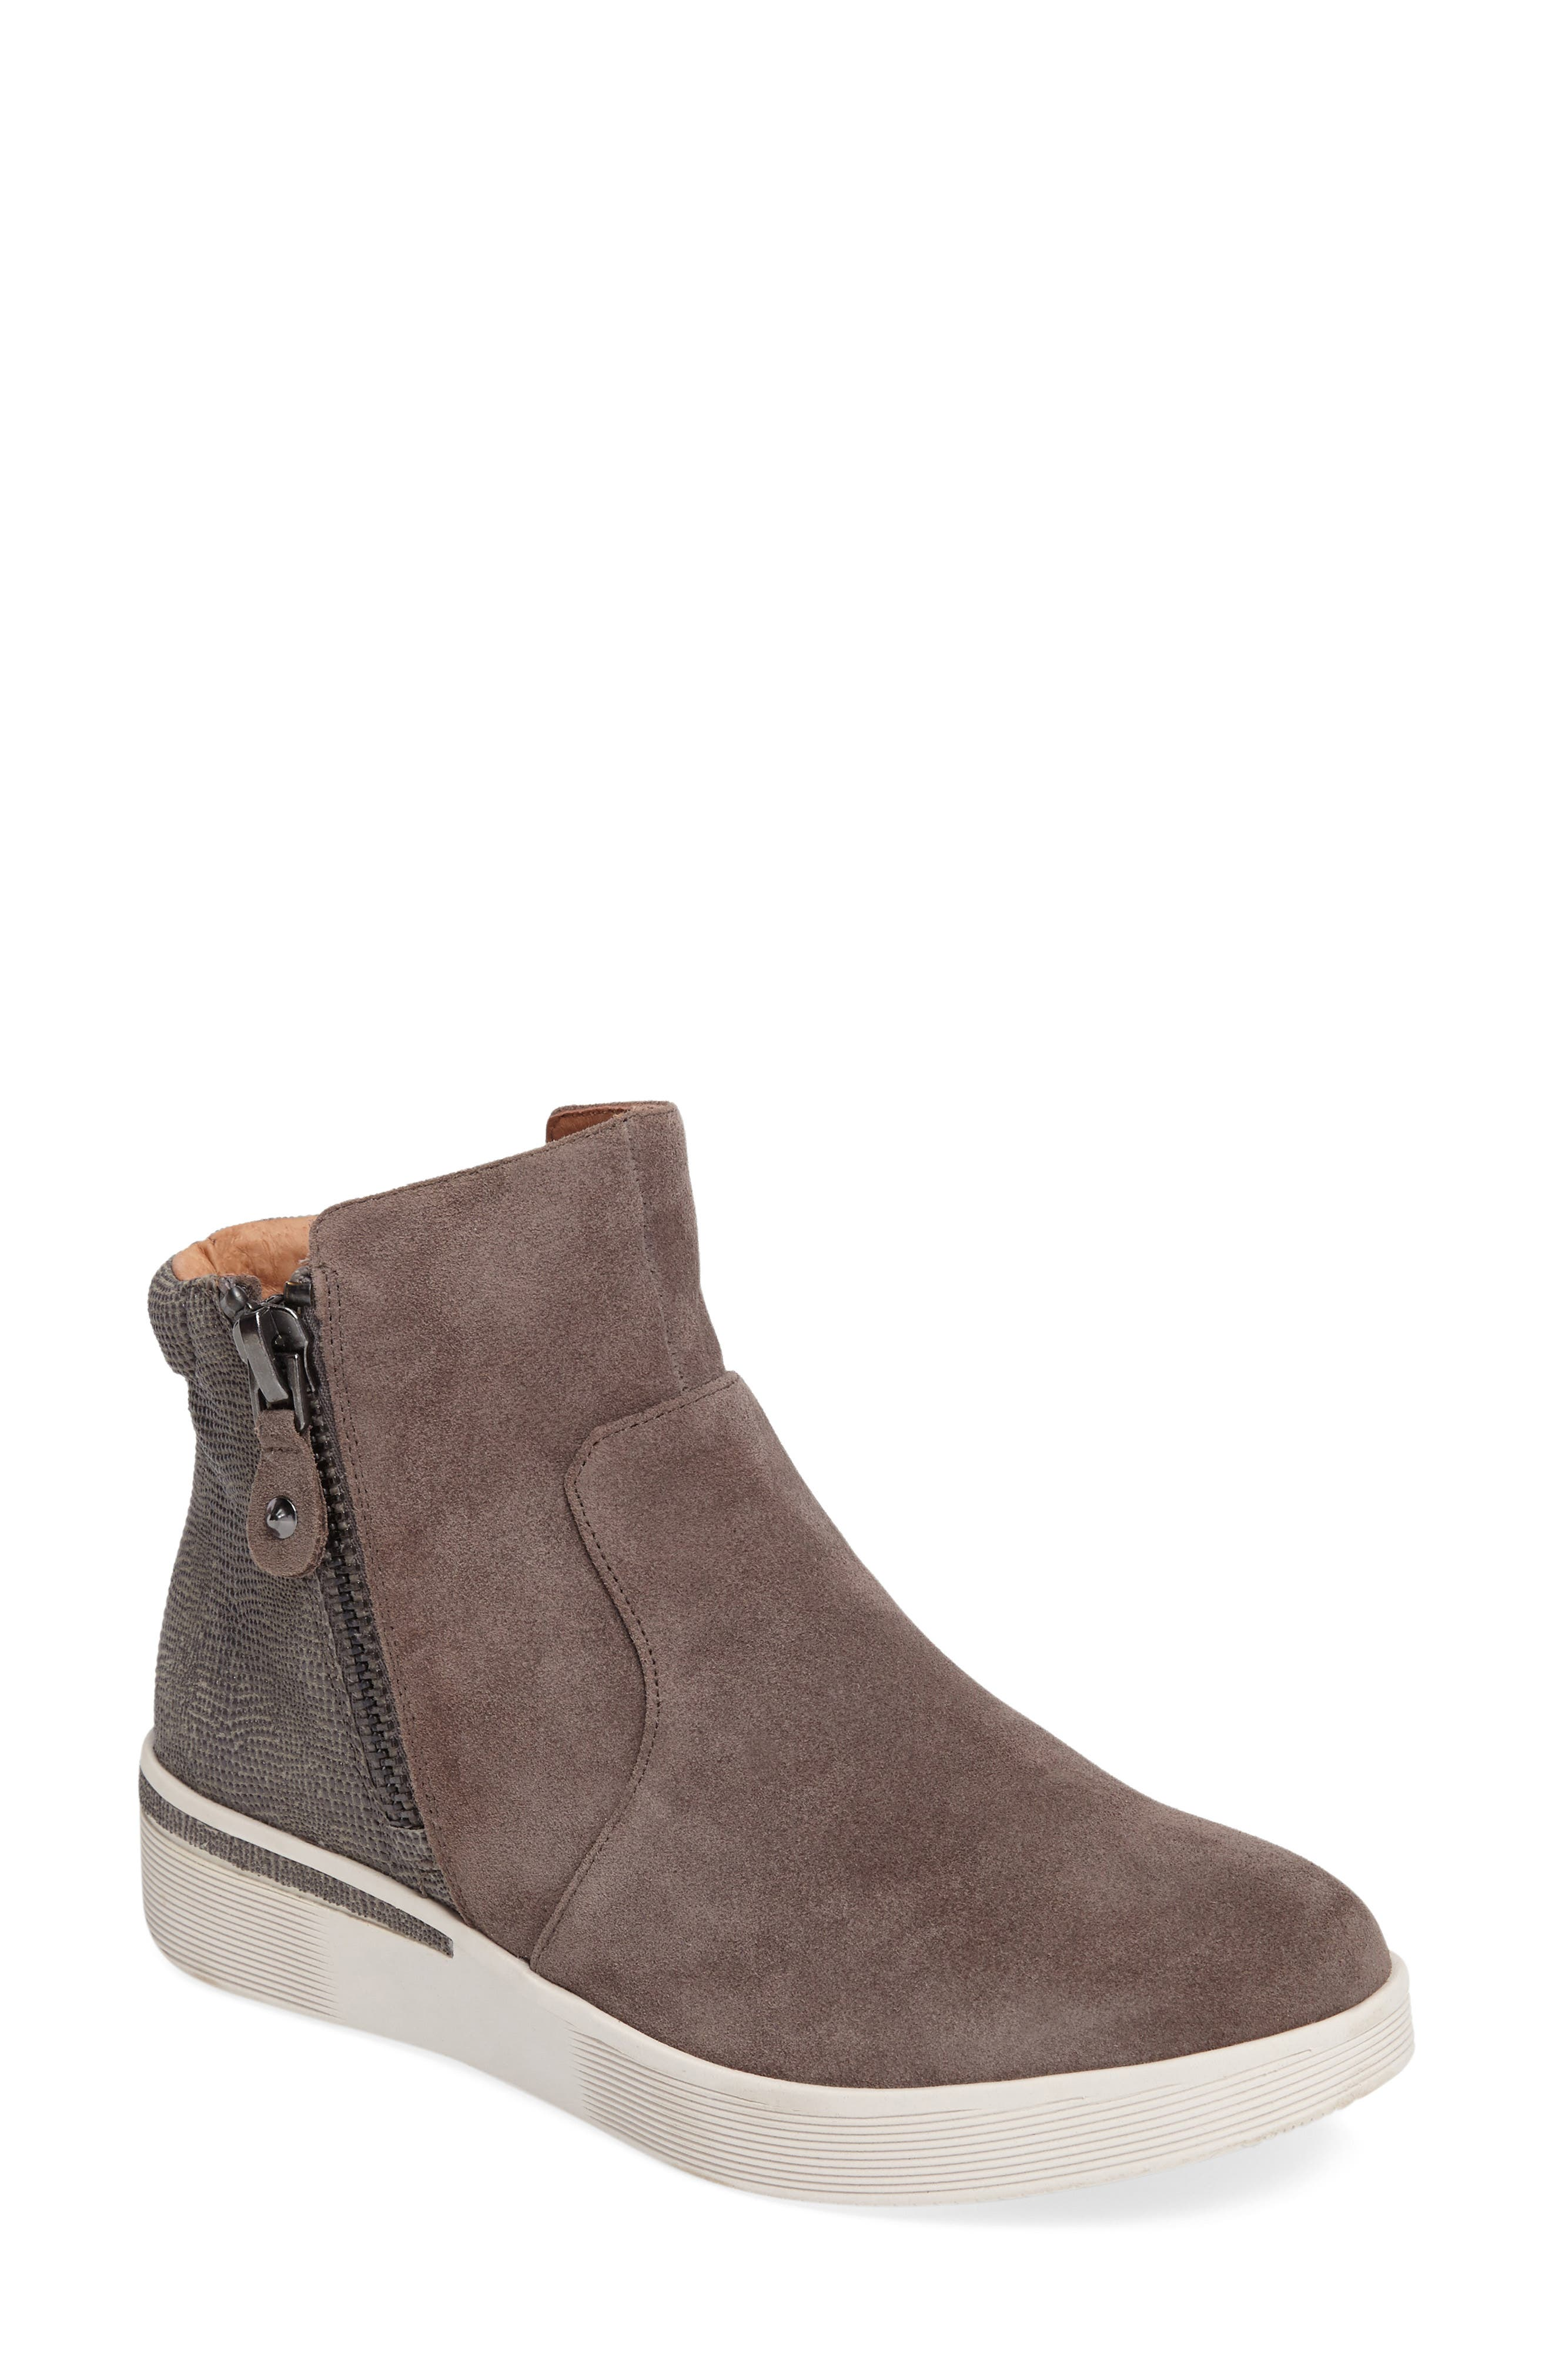 GENTLE SOULS BY KENNETH COLE 'Harper' Sneaker Bootie, Main, color, GREY LEATHER